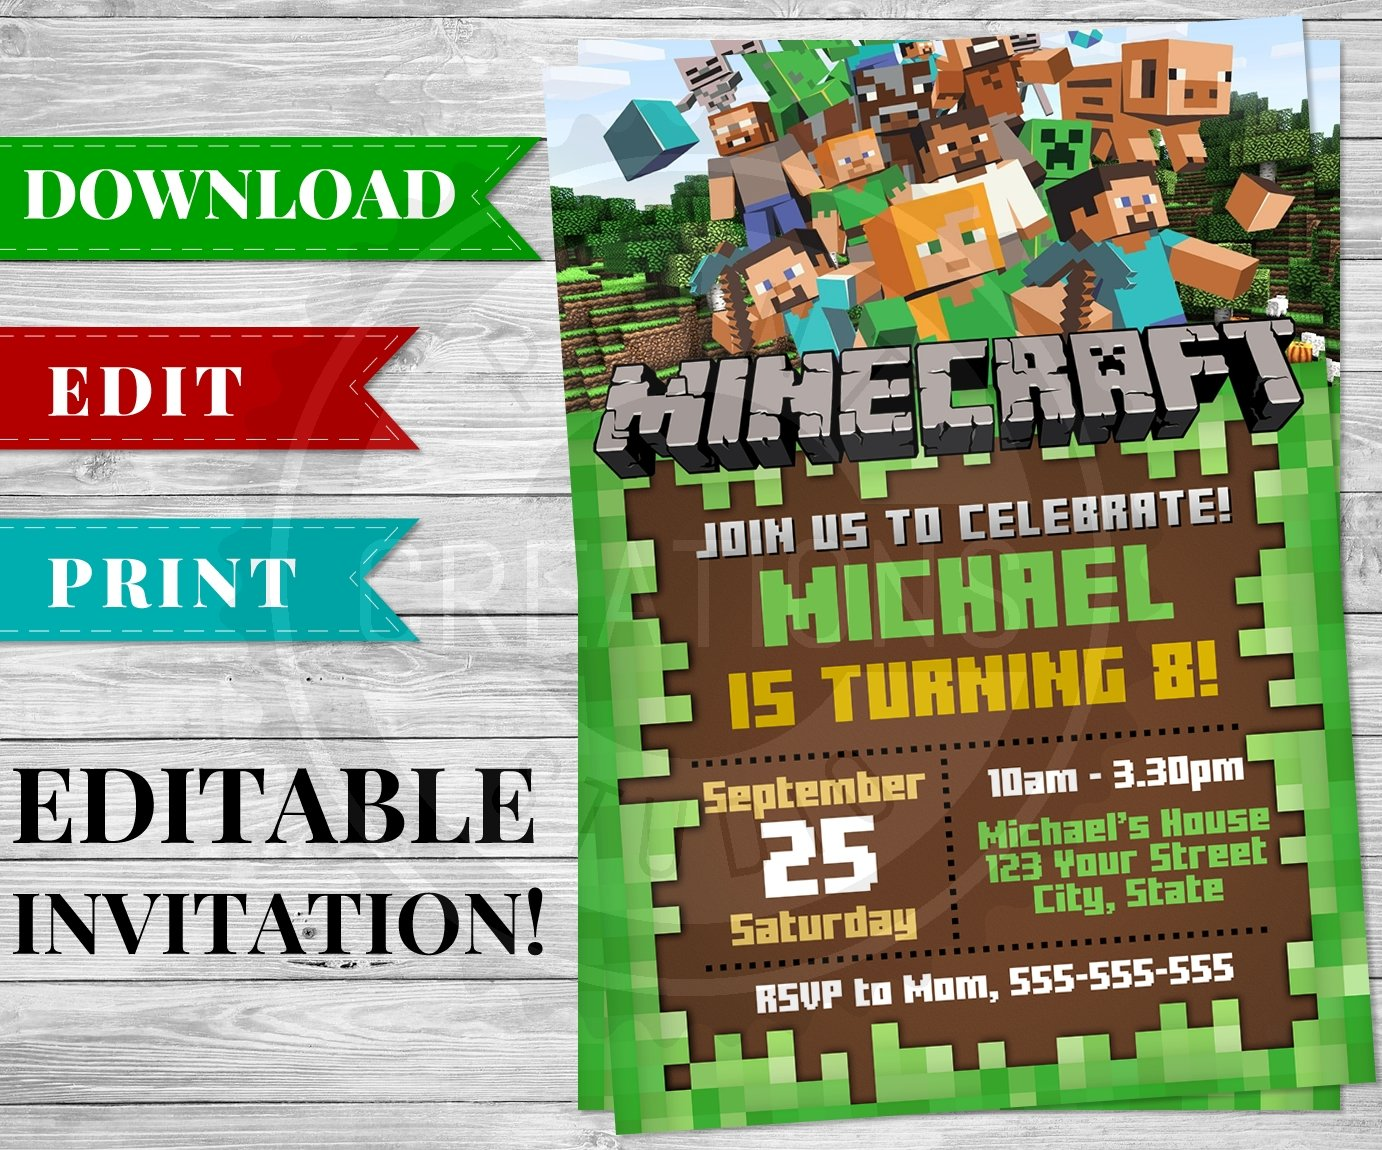 graphic about Minecraft Invitations Printable identified as Minecraft Invitation - Editable and Printable